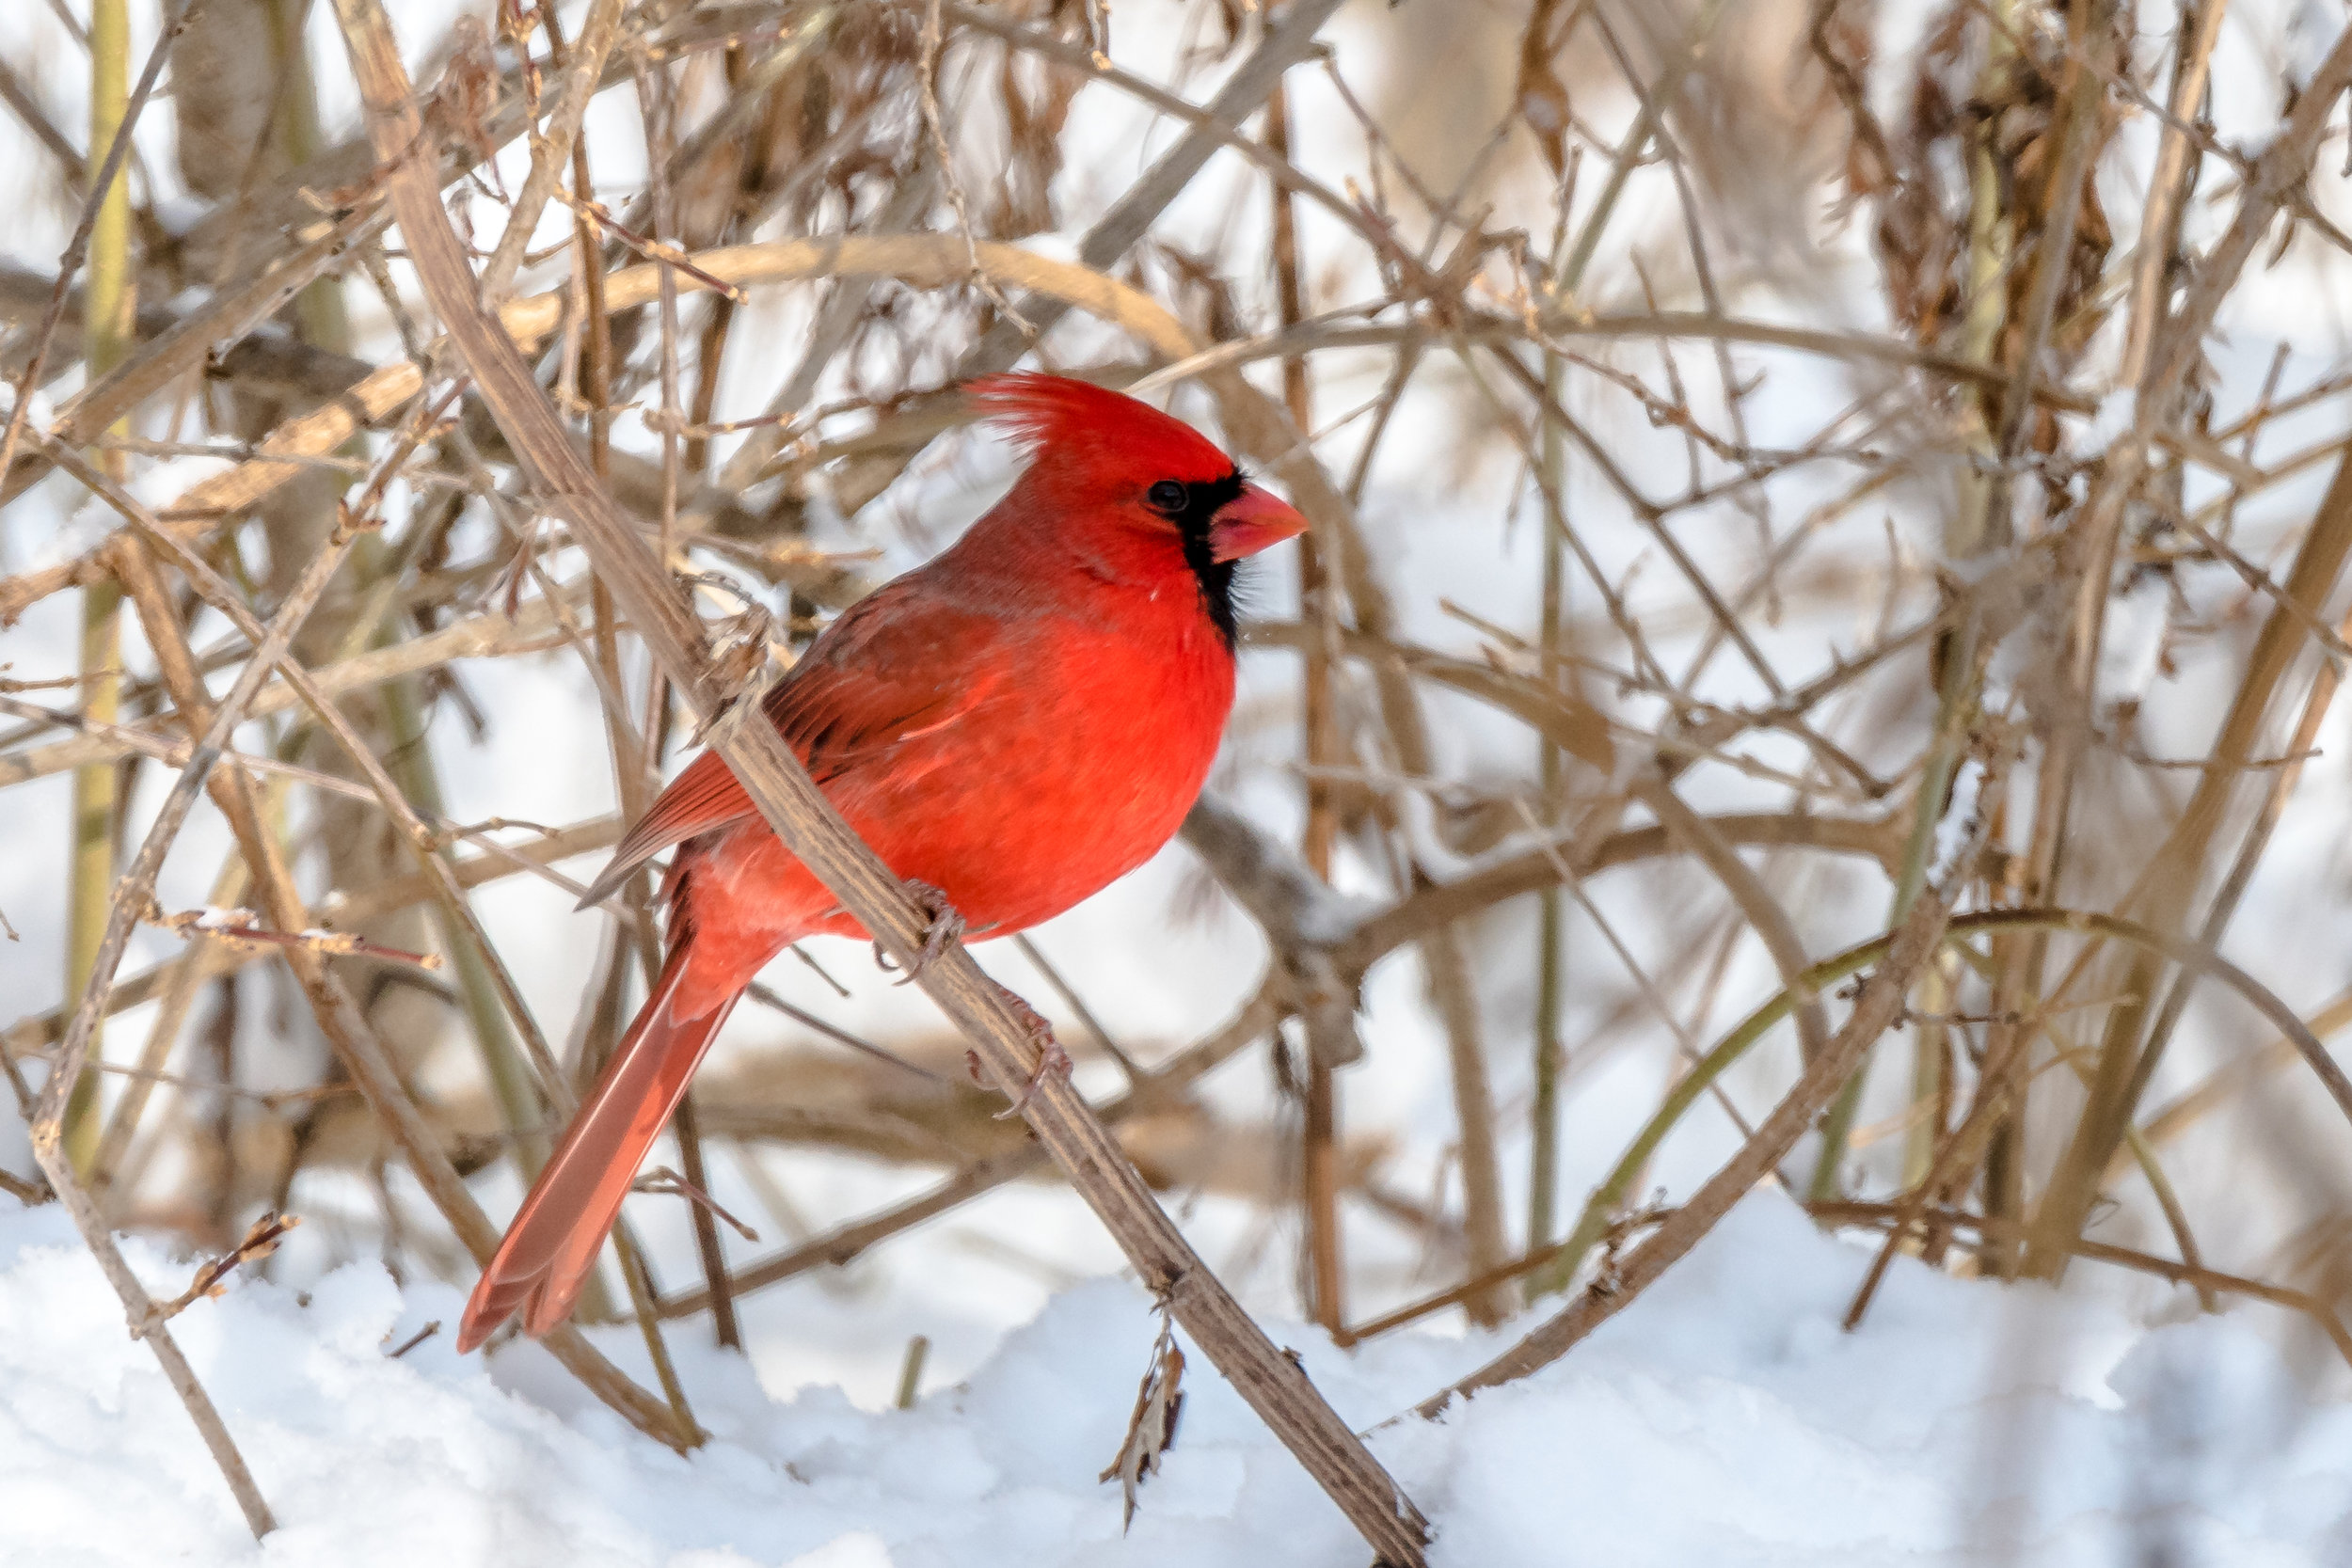 The male cardinal has been here year round with his mate. They come out at dusk and early morning no matter what the weather is.